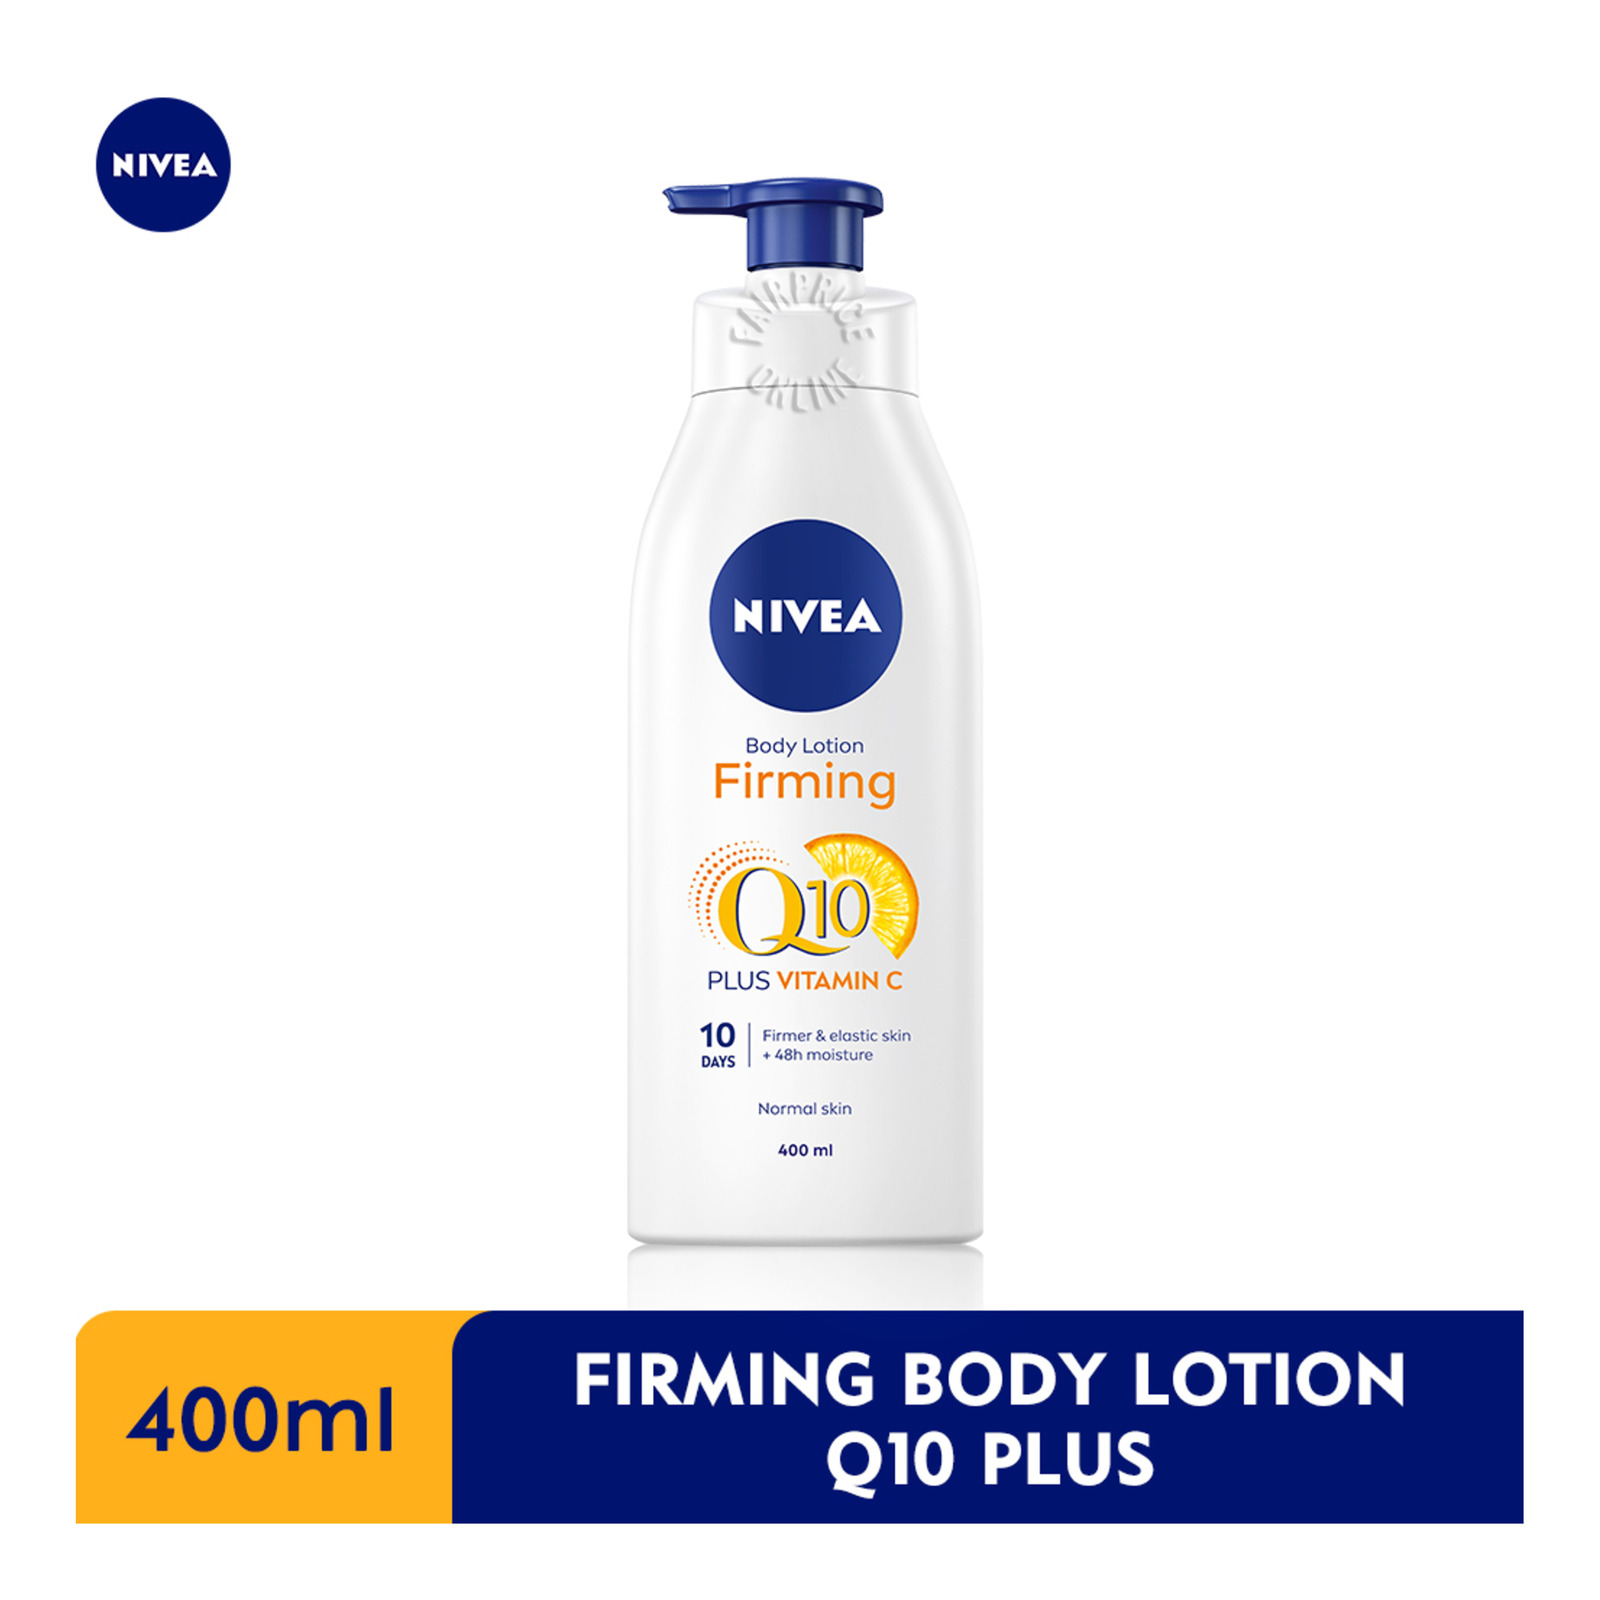 NIVEA Extra Whitening Firming Body Lotion 400ml